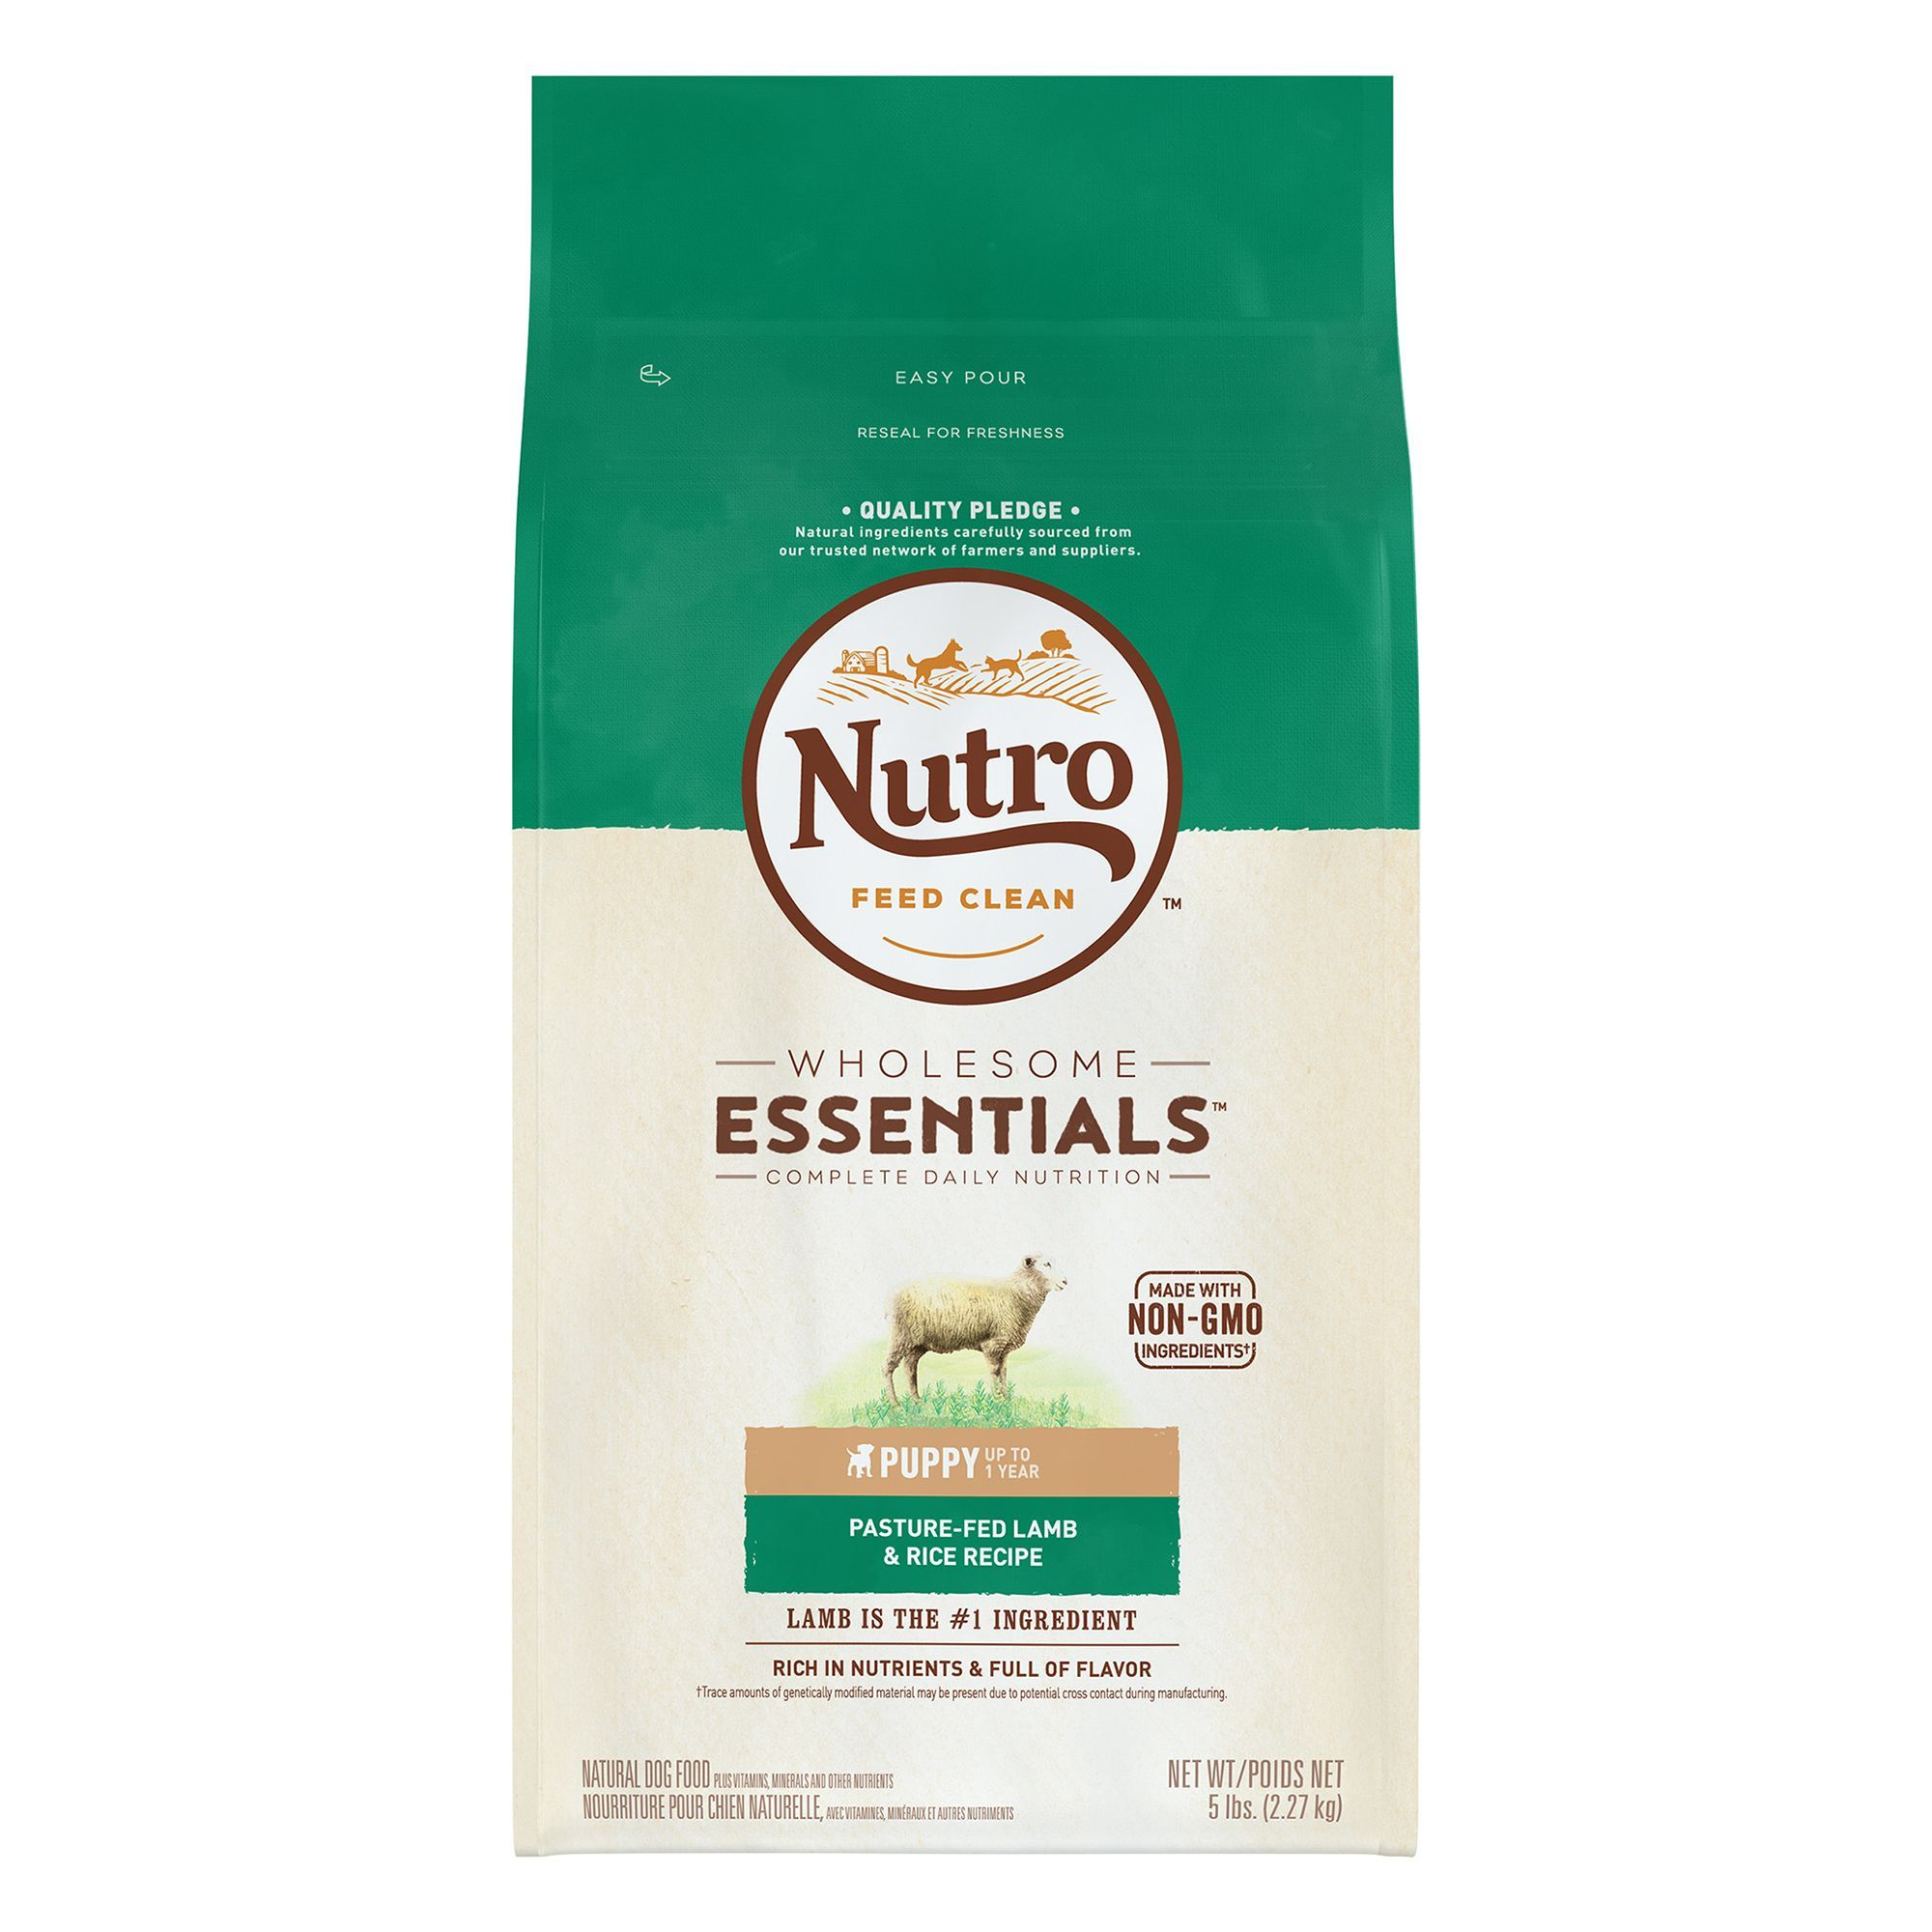 Nutro Wholesome Essentials Puppy Food Natural Lamb And Rice